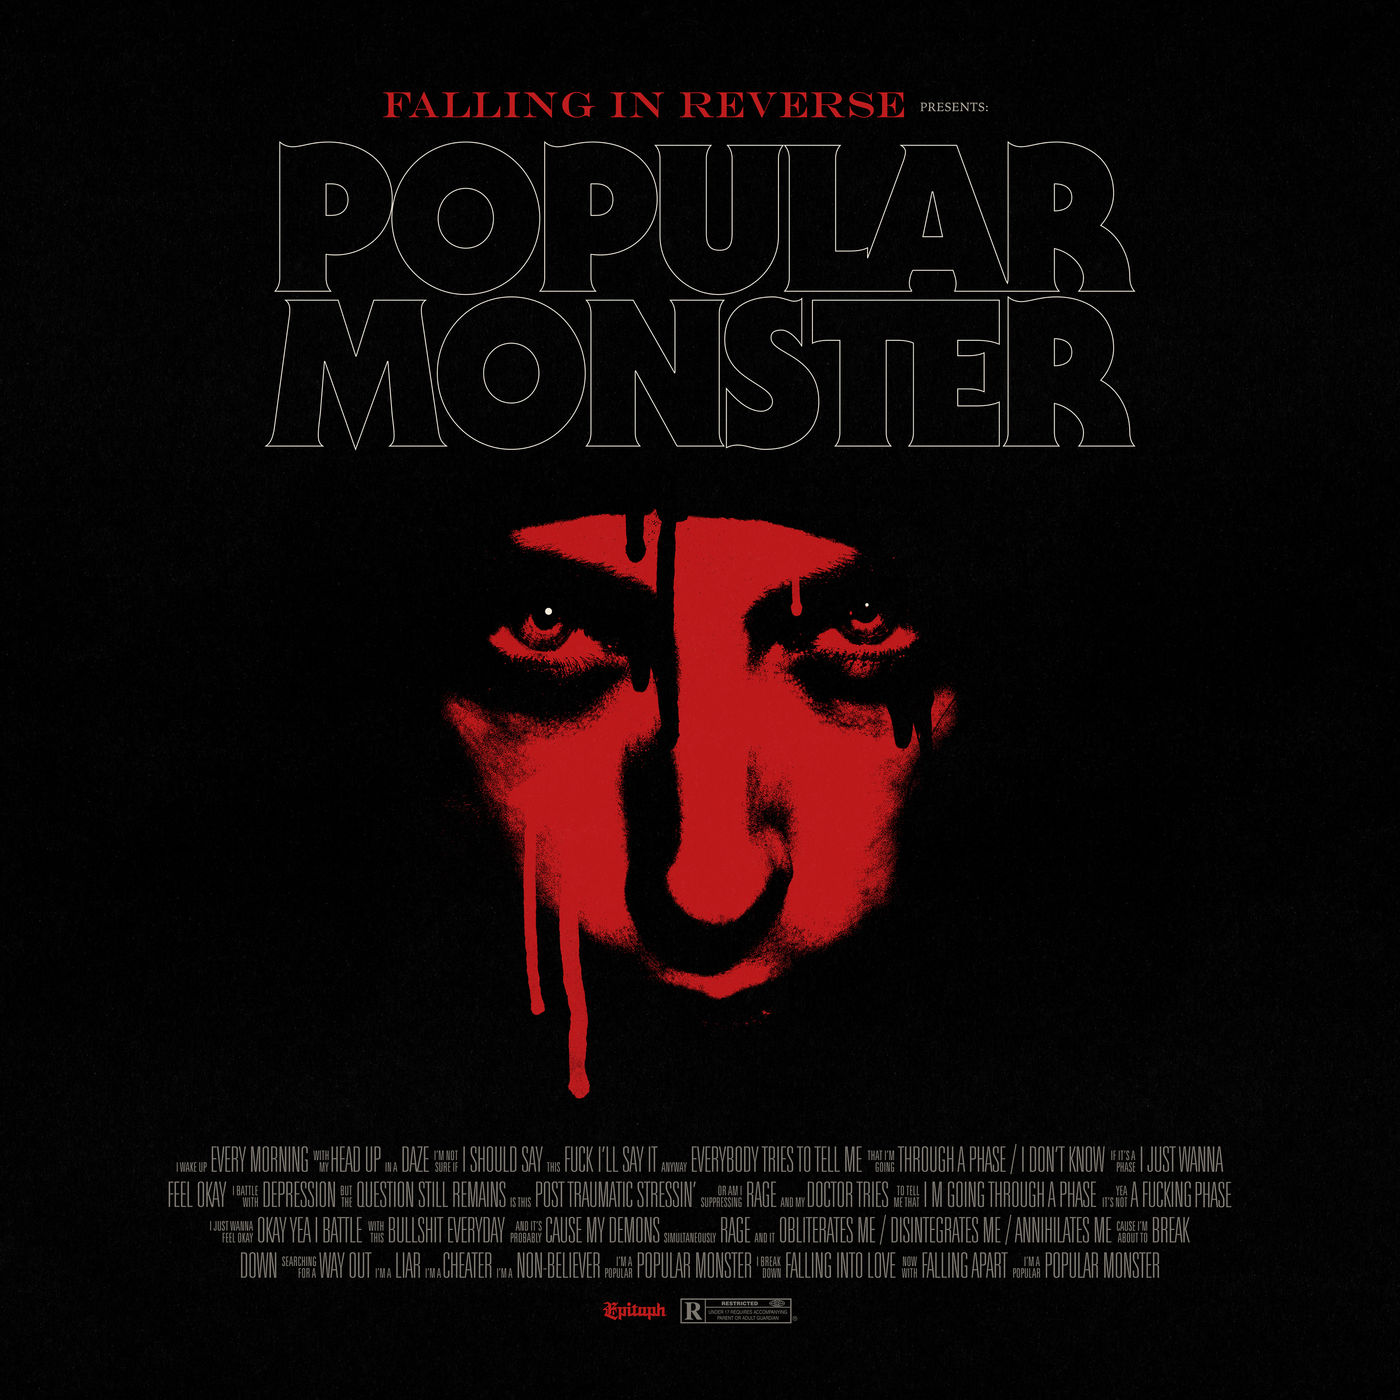 Falling In Reverse - Popular Monster [single] (2019)